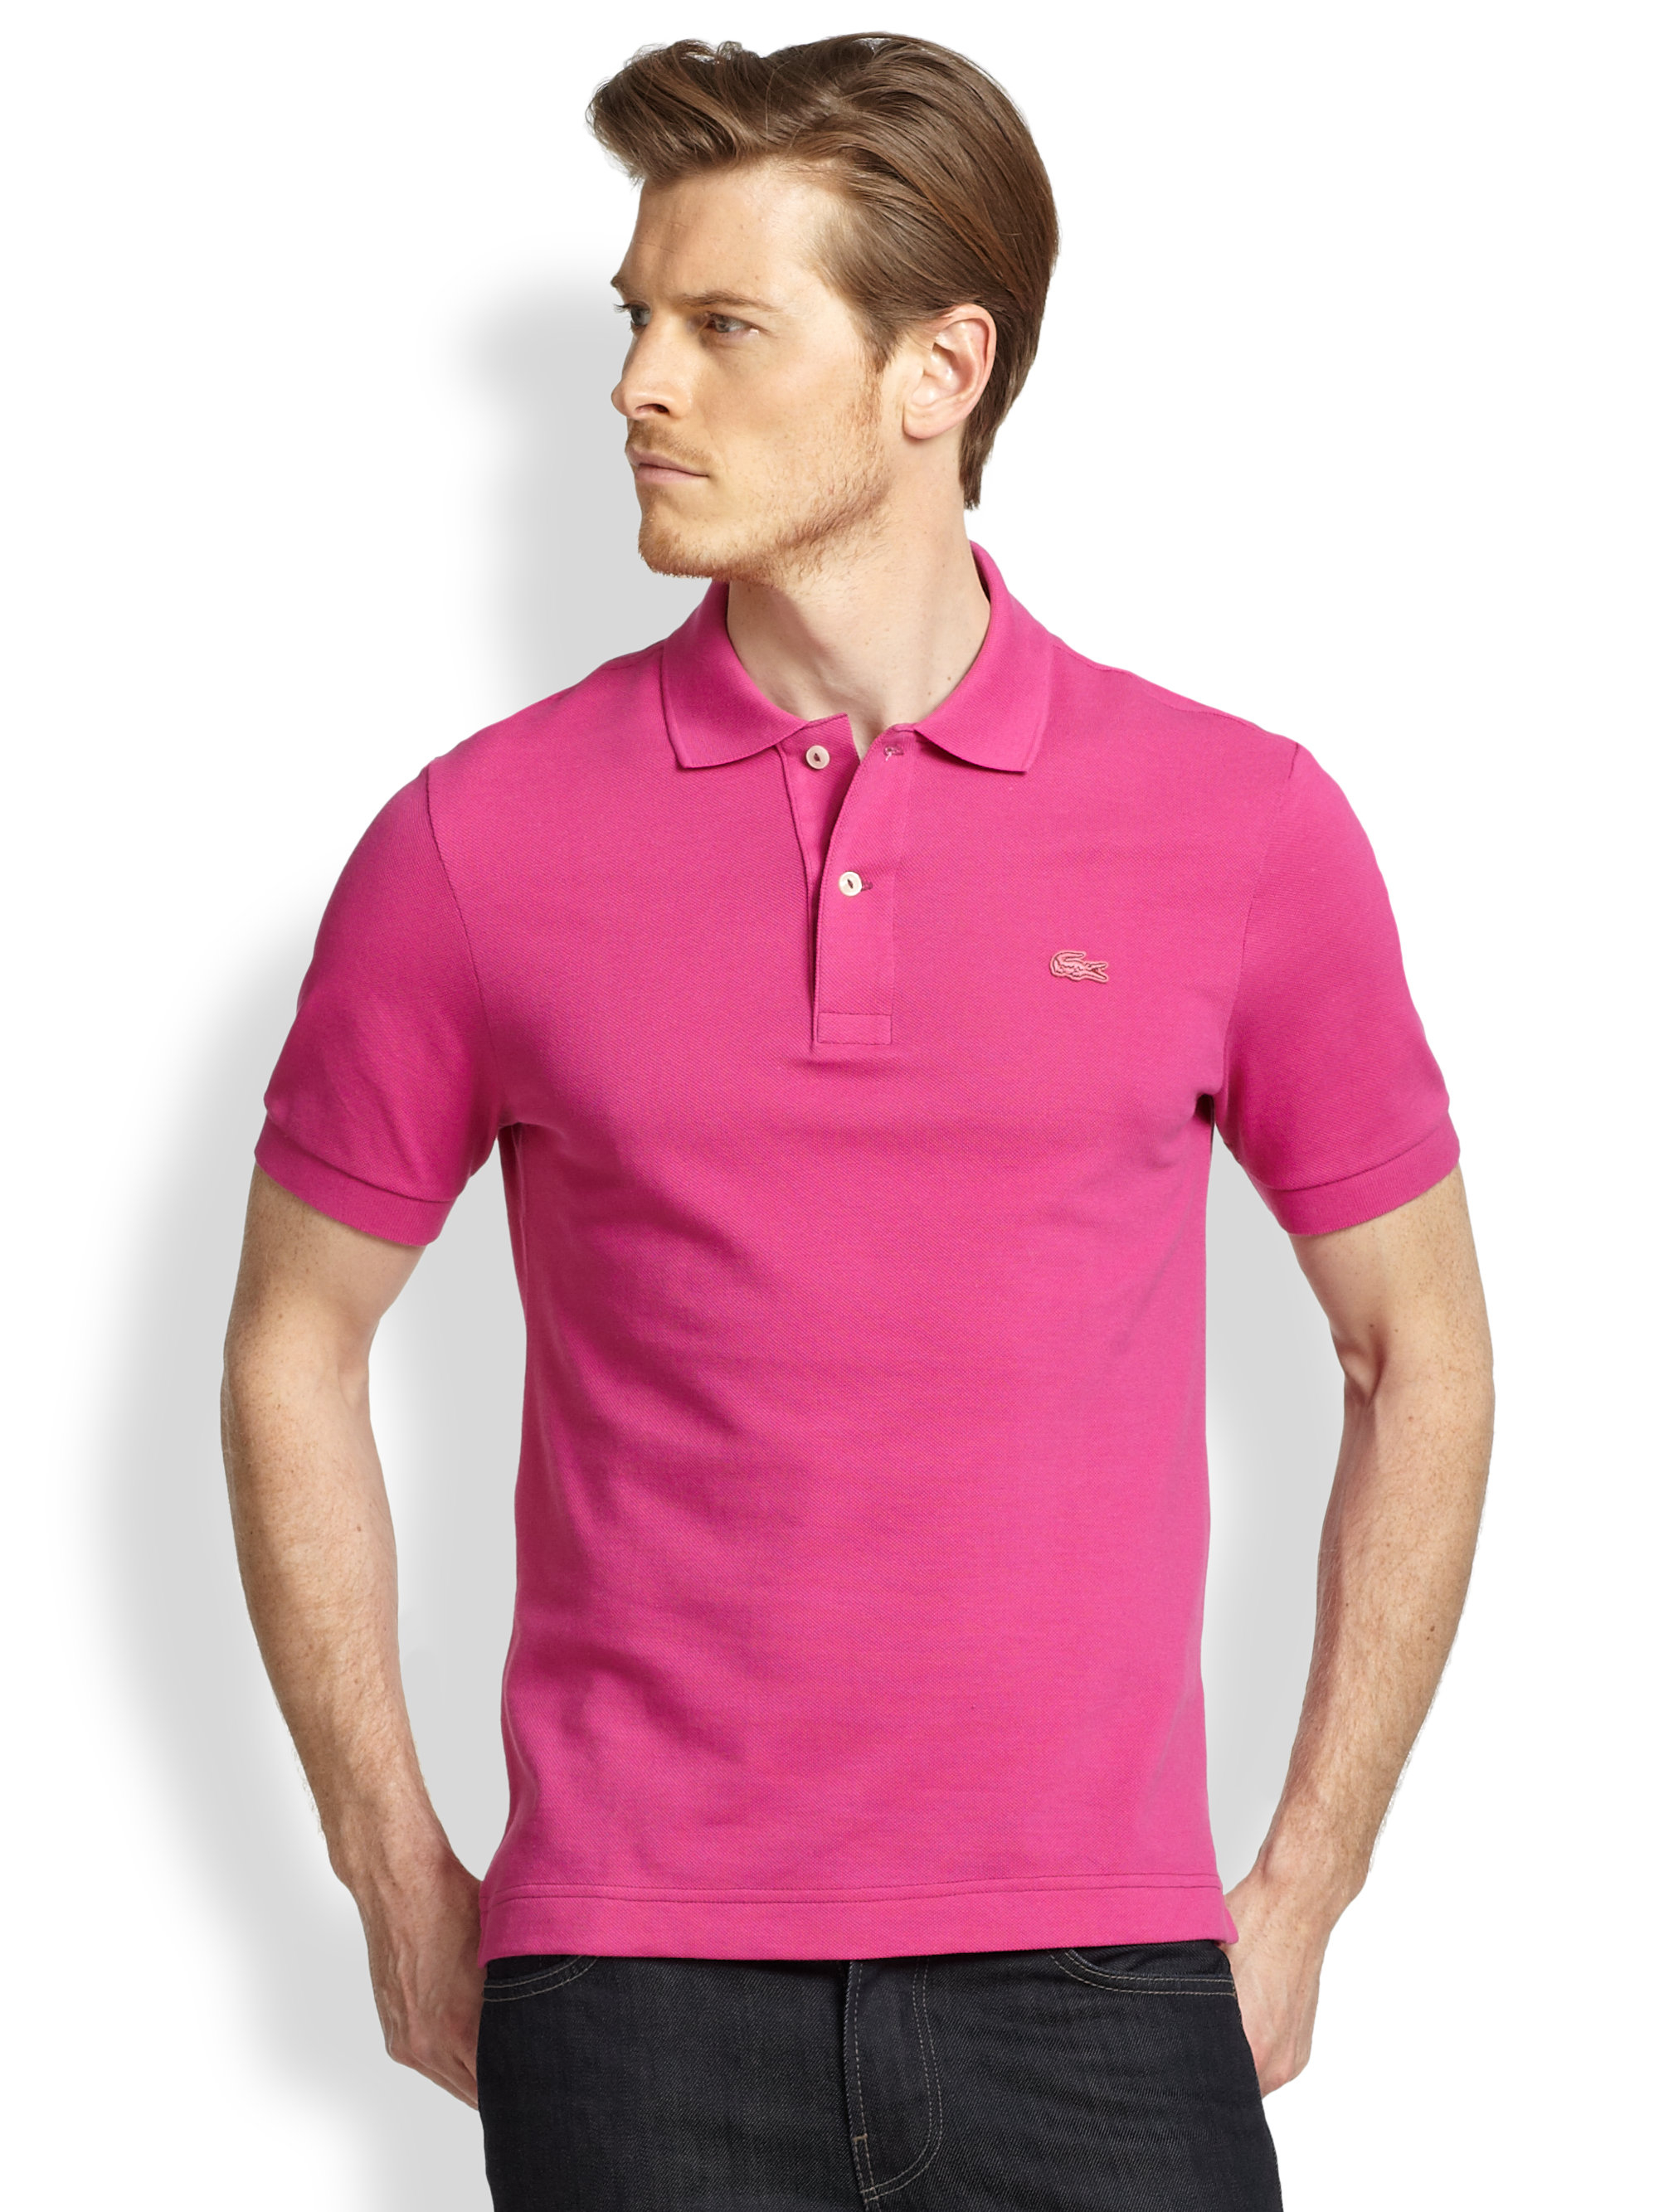 Lyst - Lacoste Tonal Croc Polo Shirt in Pink for Men